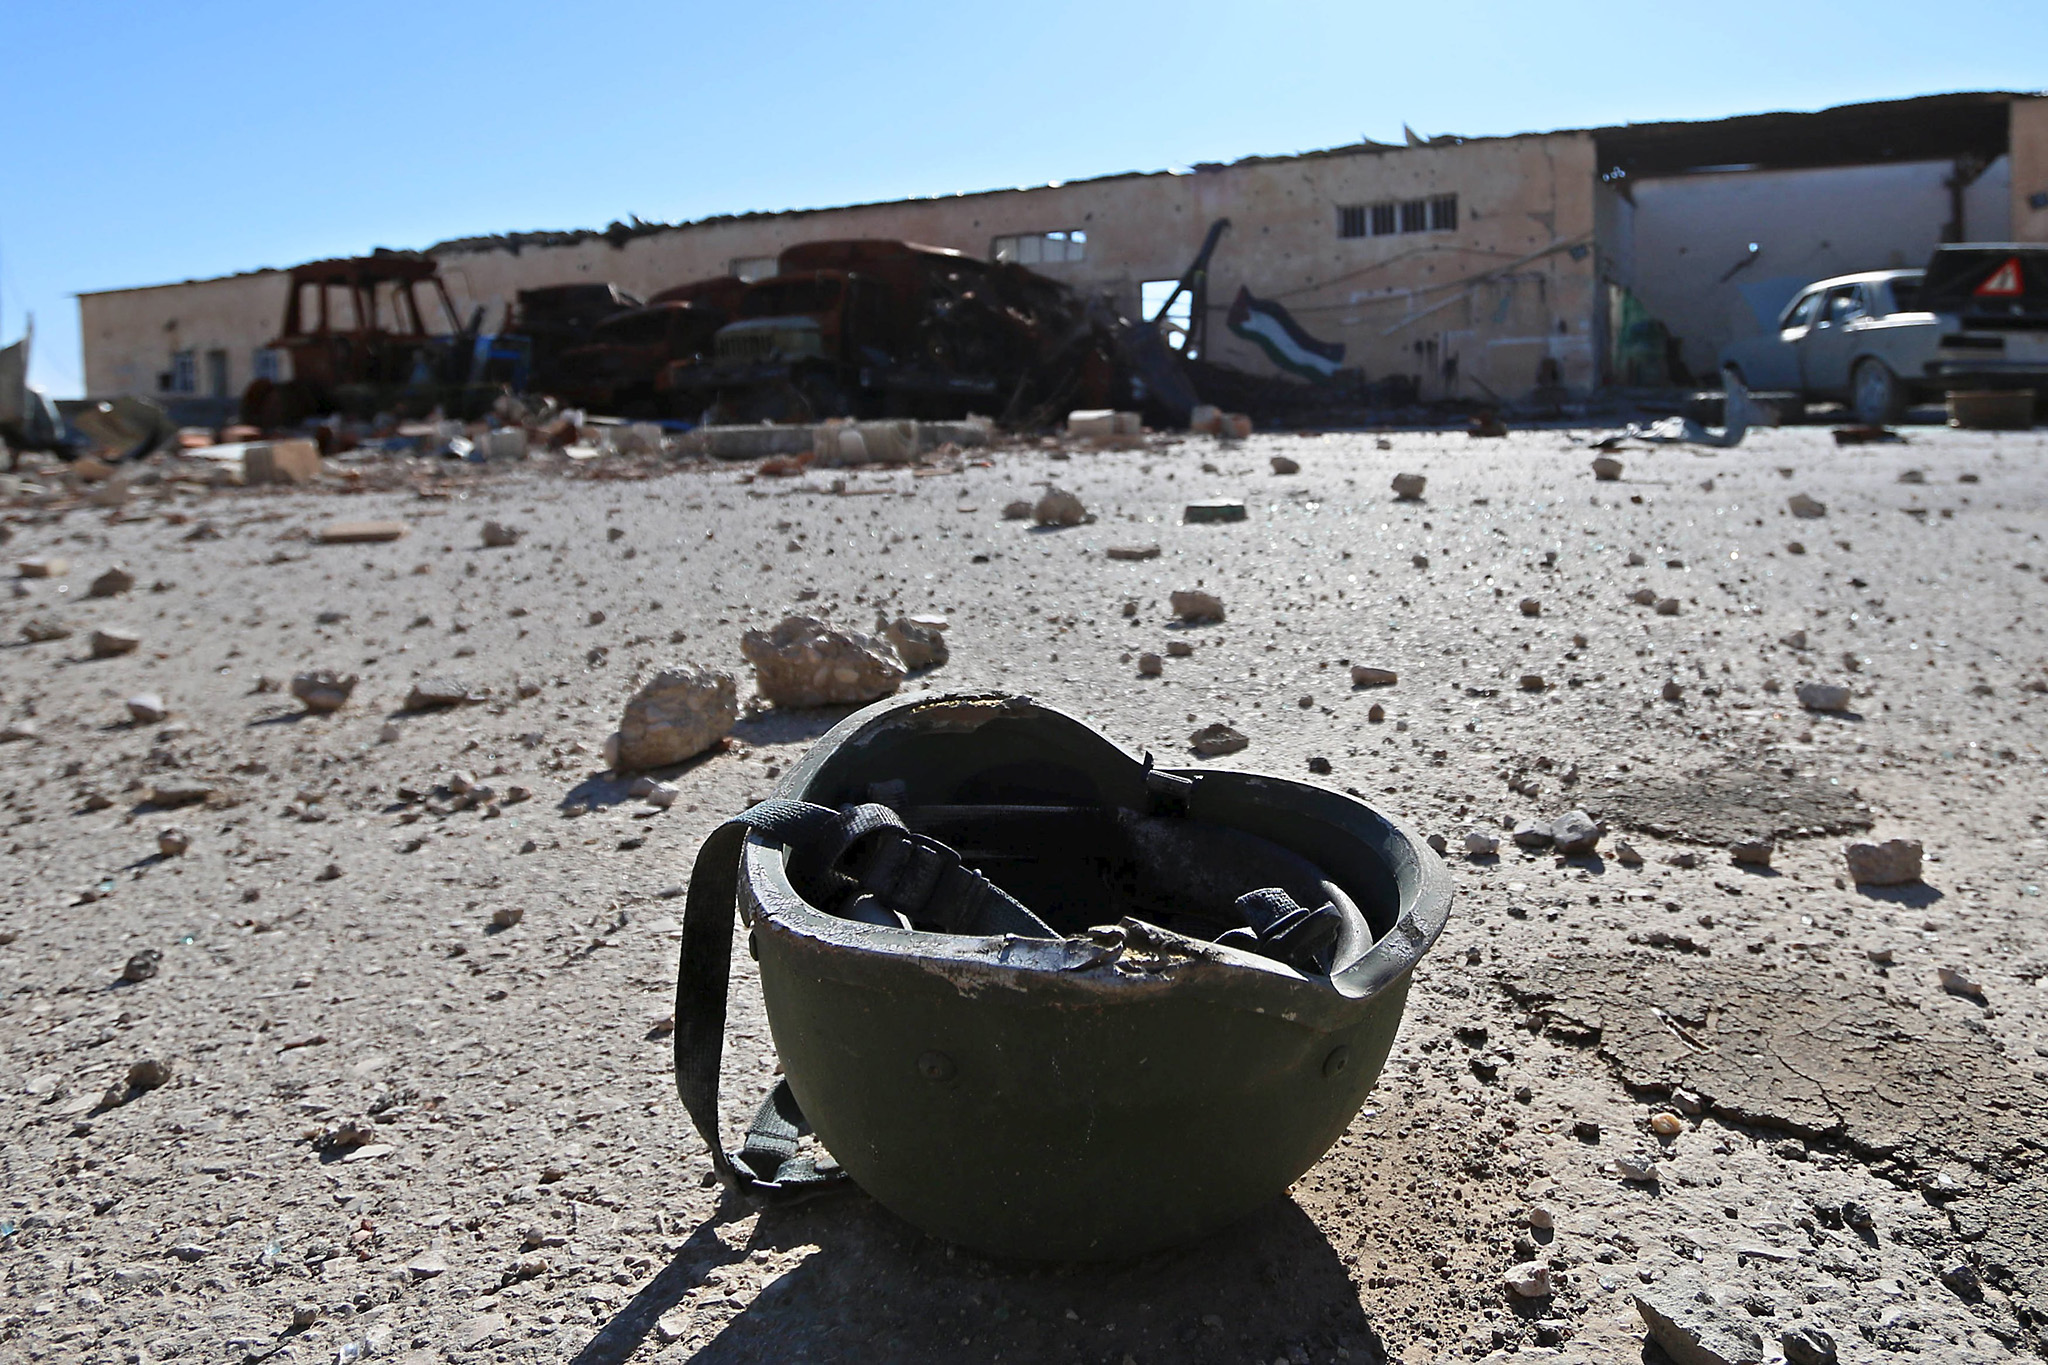 A helmet that belonged to Islamic State militants is seen on the ground at the 121 Regiment base after Fighters from the Democratic Forces of Syria took control of the base in the town of al-Melabiyyah, south of Hasaka city, Syria...A helmet belonging to a Islamic State militant is seen on the ground at the 121 Regiment base after Fighters from the Democratic Forces of Syria took control of the base in the town of al-Melabiyyah, south of Hasaka city, Syria November 24, 2015. Picture taken November 24, 2015. REUTERS/Rodi Said